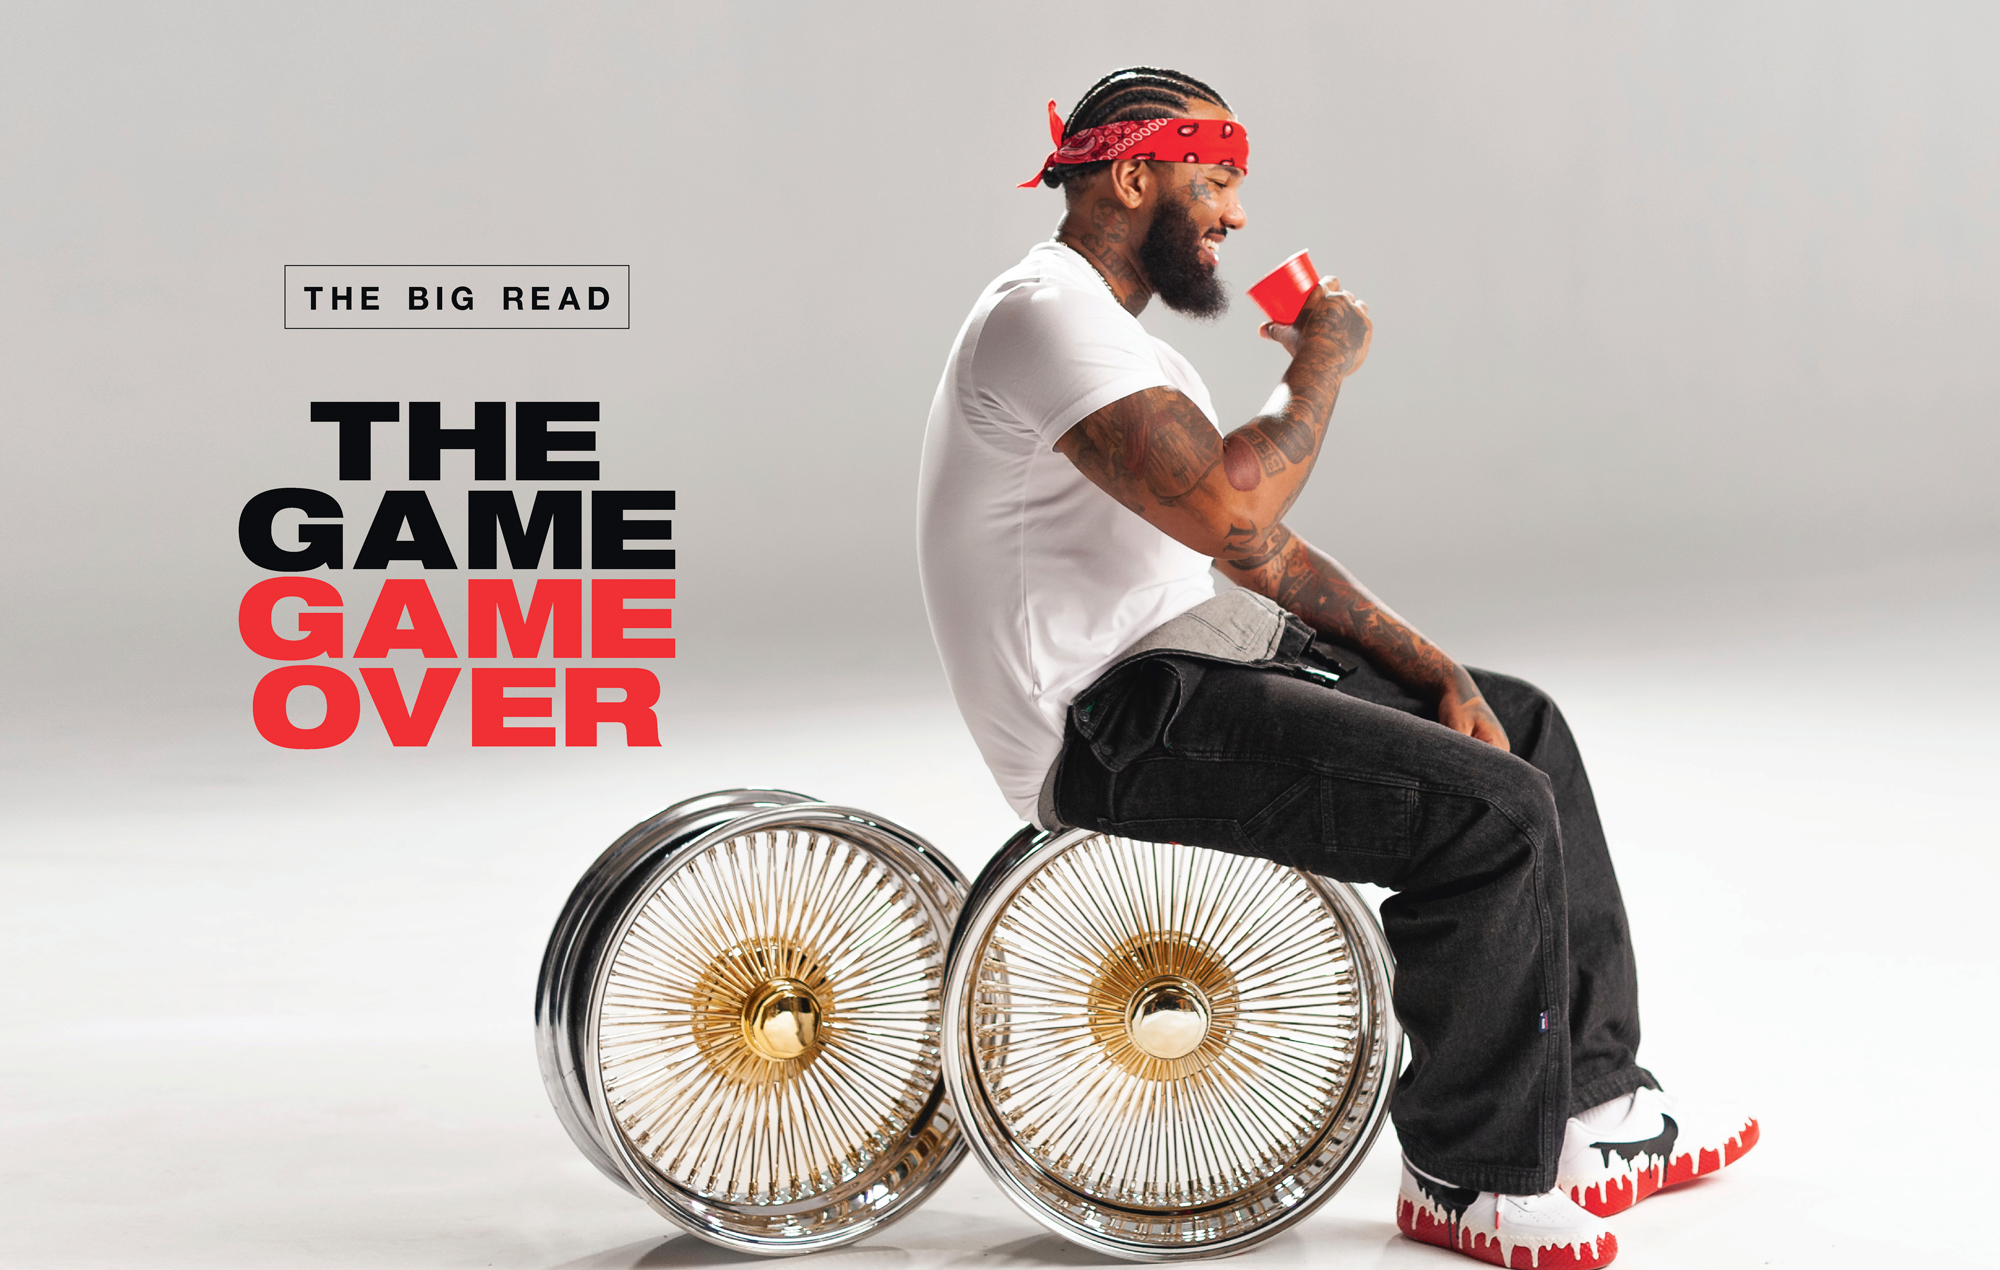 The Big Read The Game Me And 50 Cent Should Have Died In That Beef Nme Ladder was written by yahoo software of los angeles, california. 50 cent should have died in that beef